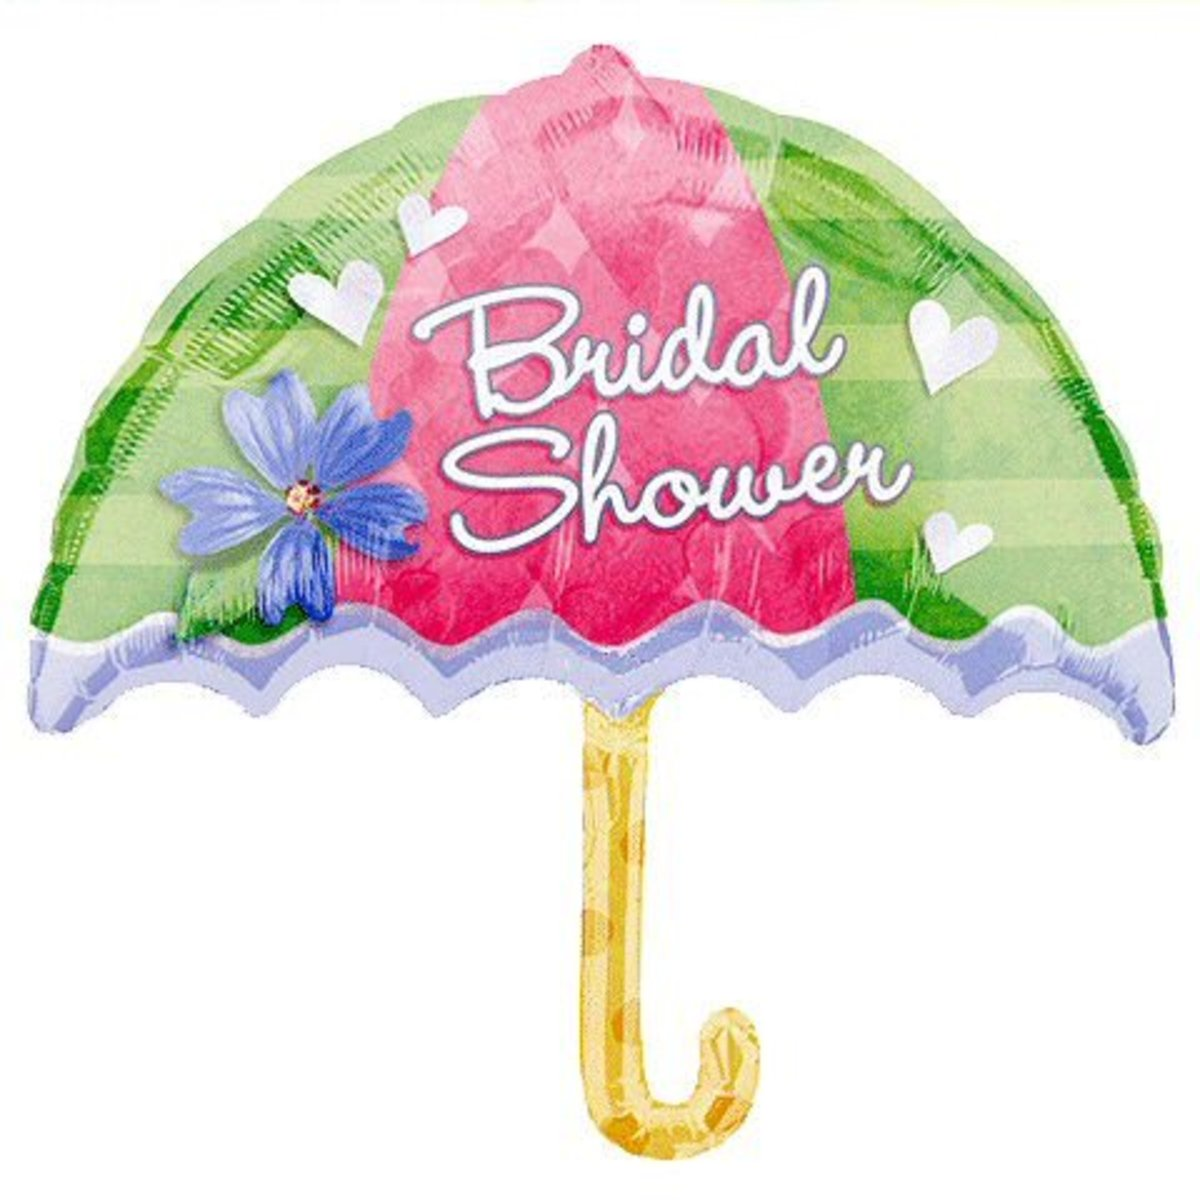 10 fun bridal shower game ideas hubpages